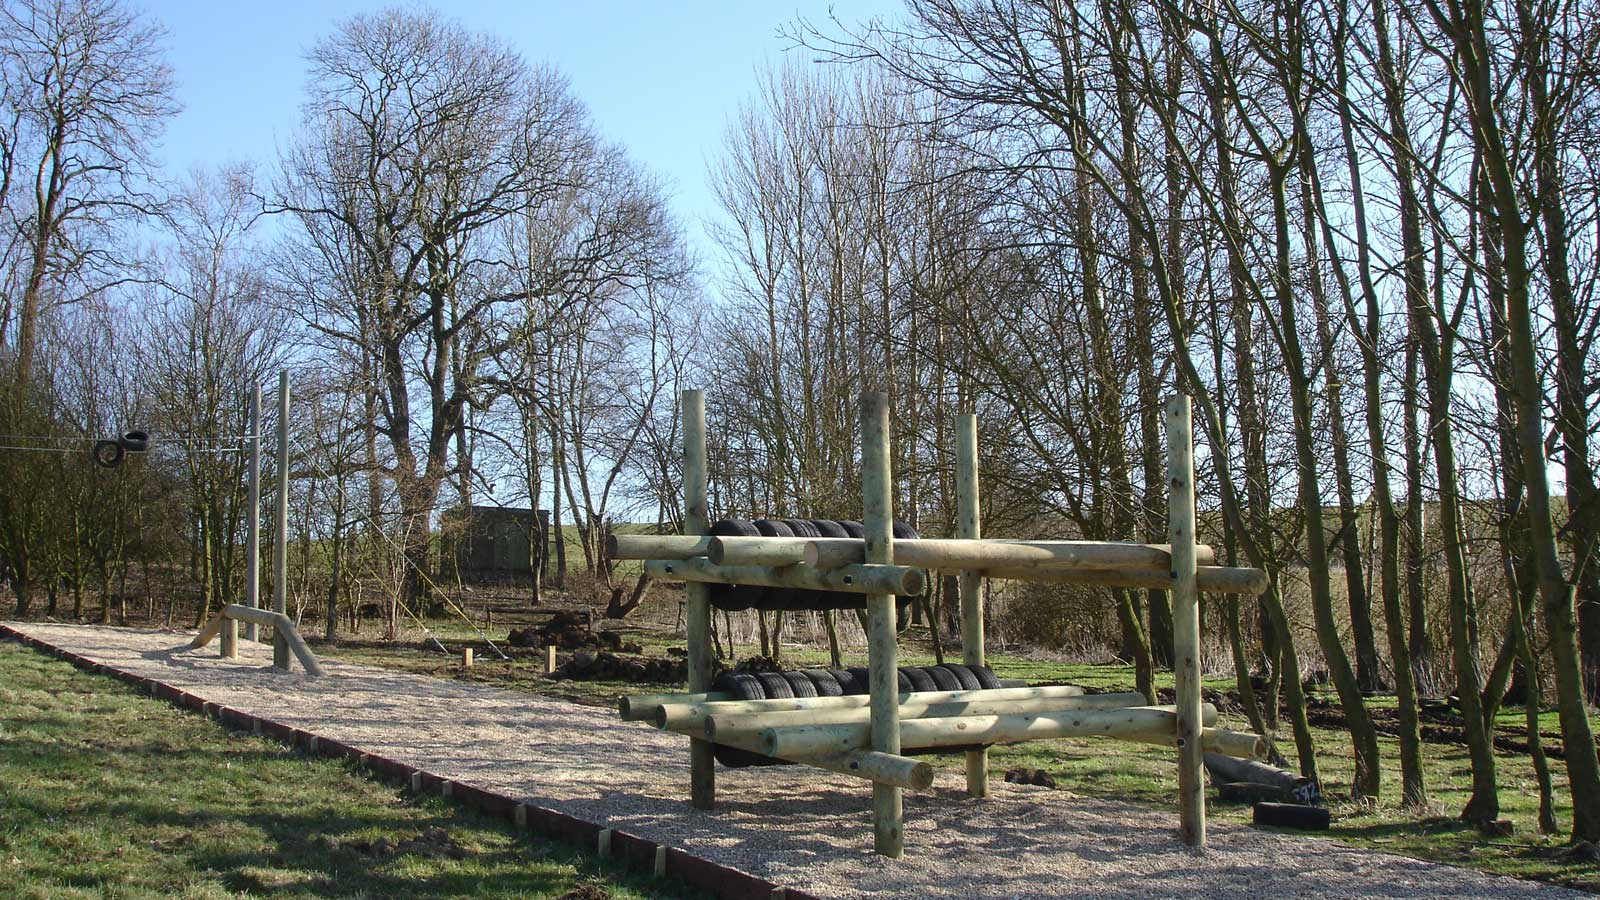 Caythorpe Court Adventure Centre Lincolnshire Primary